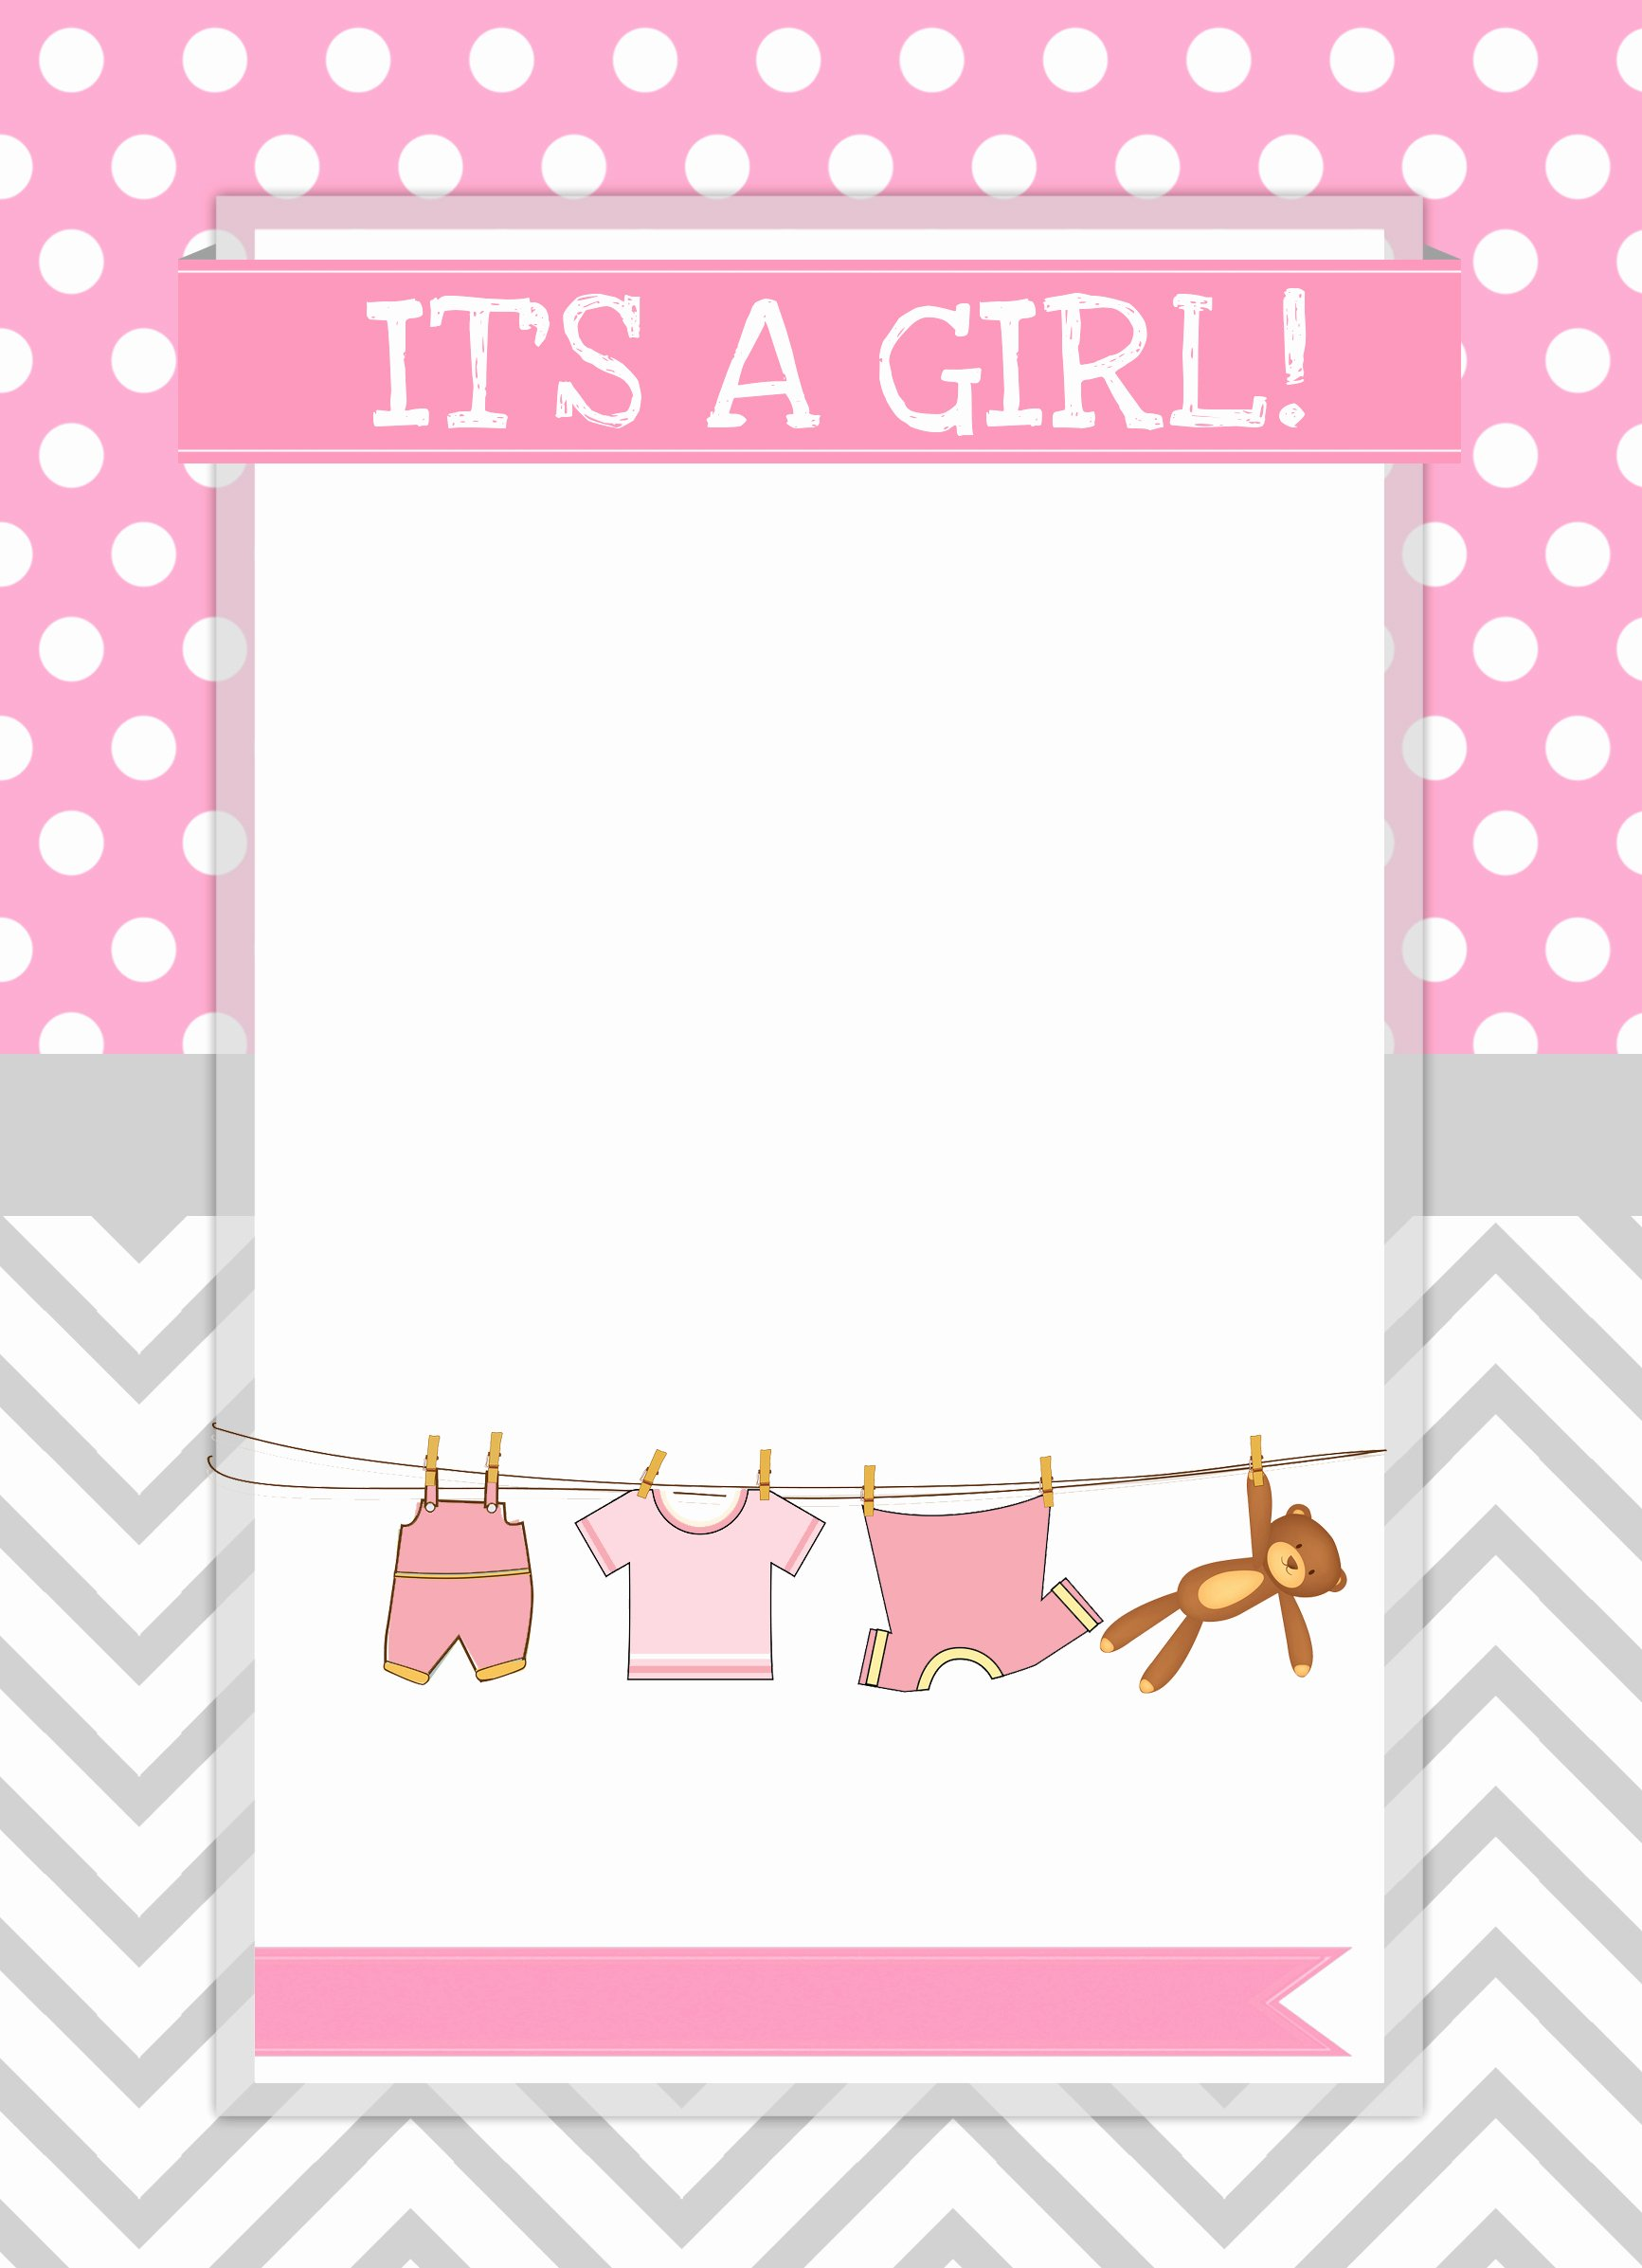 Free Baby Shower Templates Fresh Baby Girl Shower Free Printables How to Nest for Less™